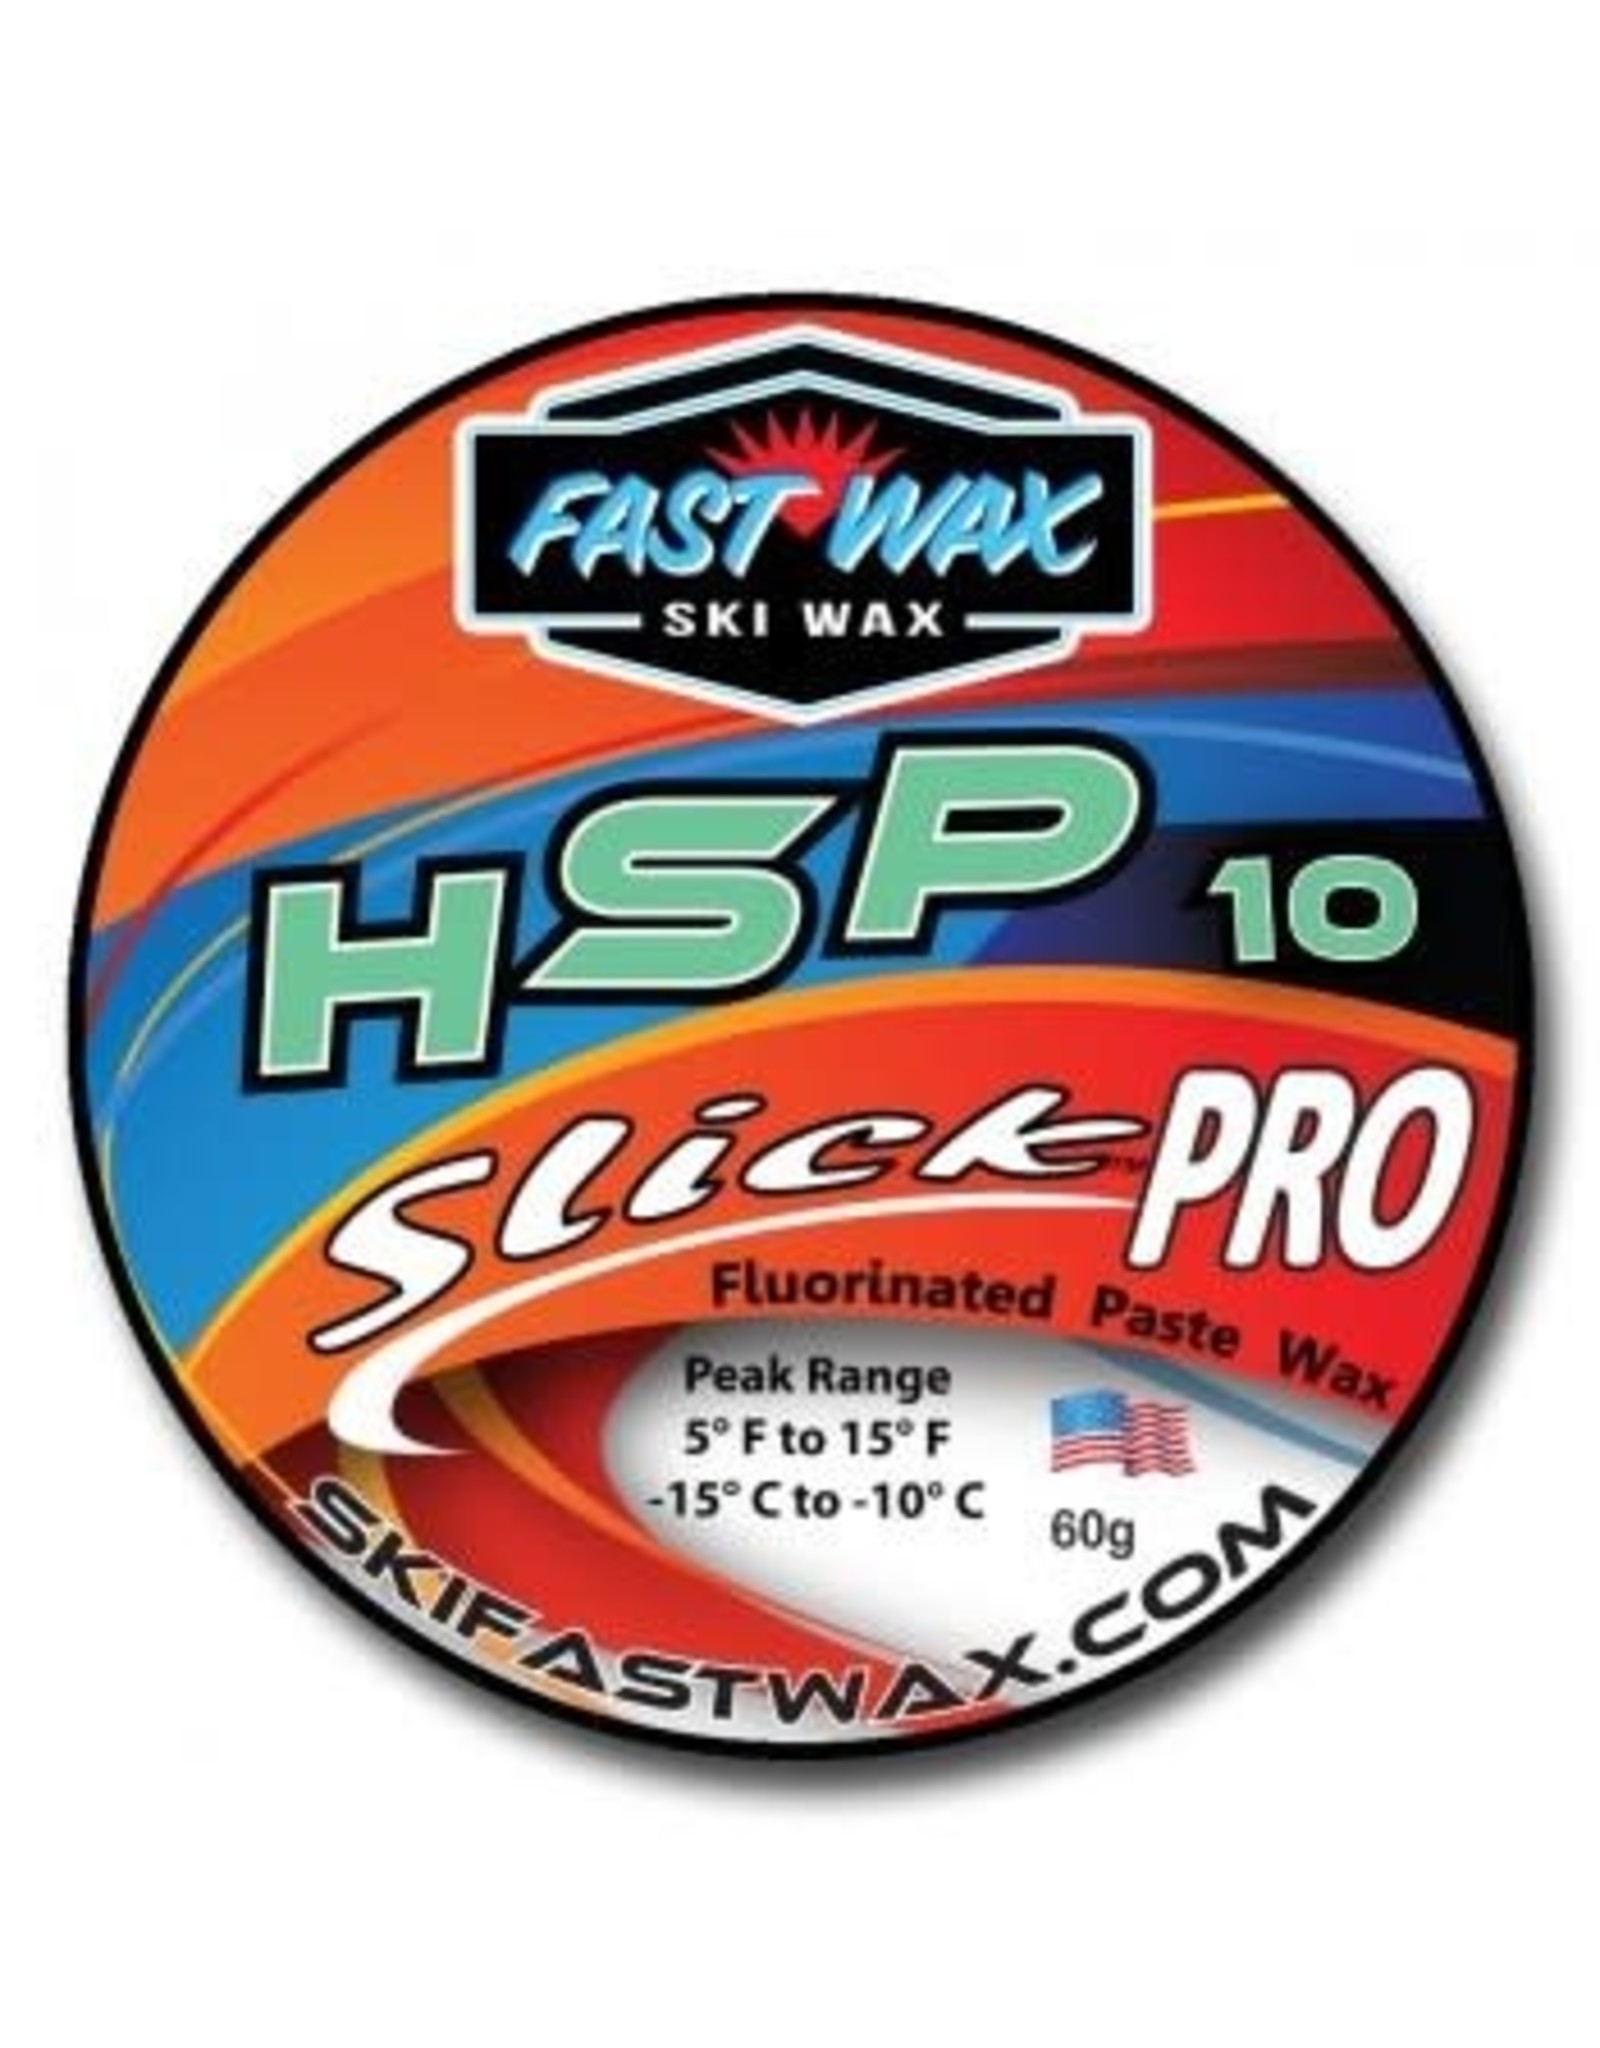 Fast Wax Fast Wax SlickPro HSP 10 Green